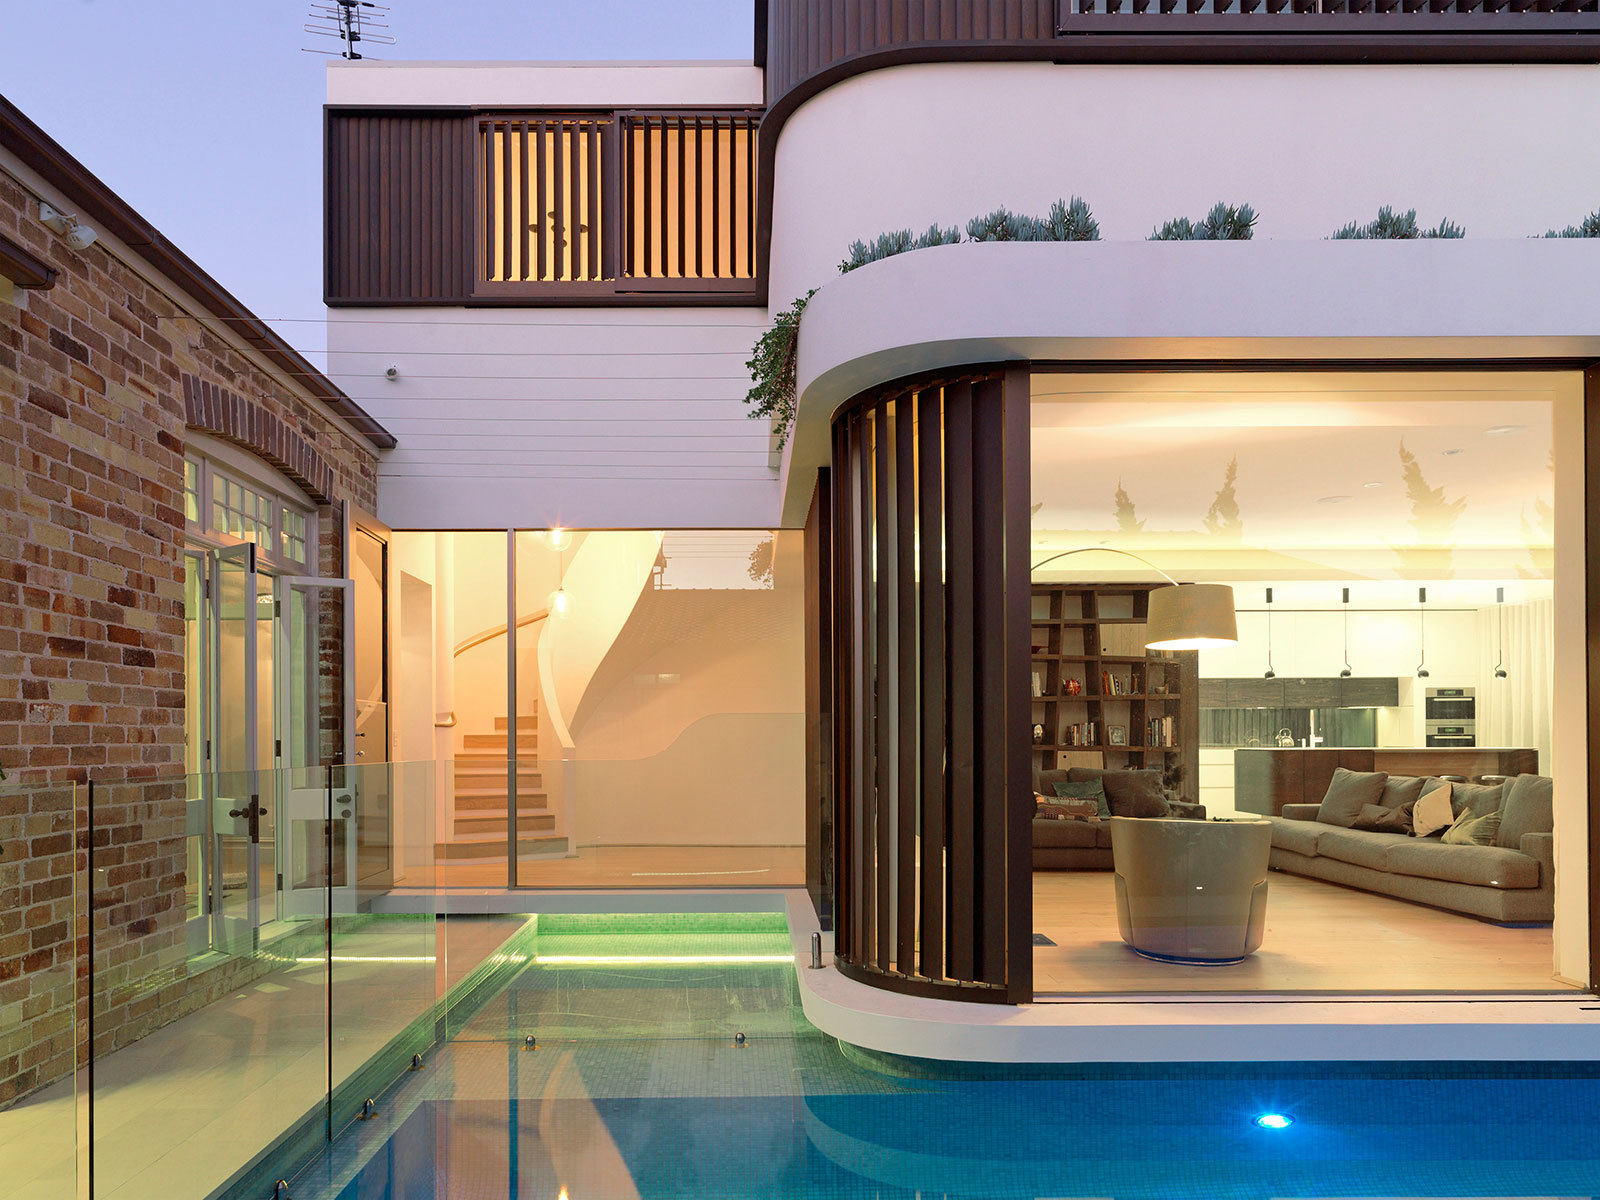 The Pool House Luigi Rosselli Archdaily